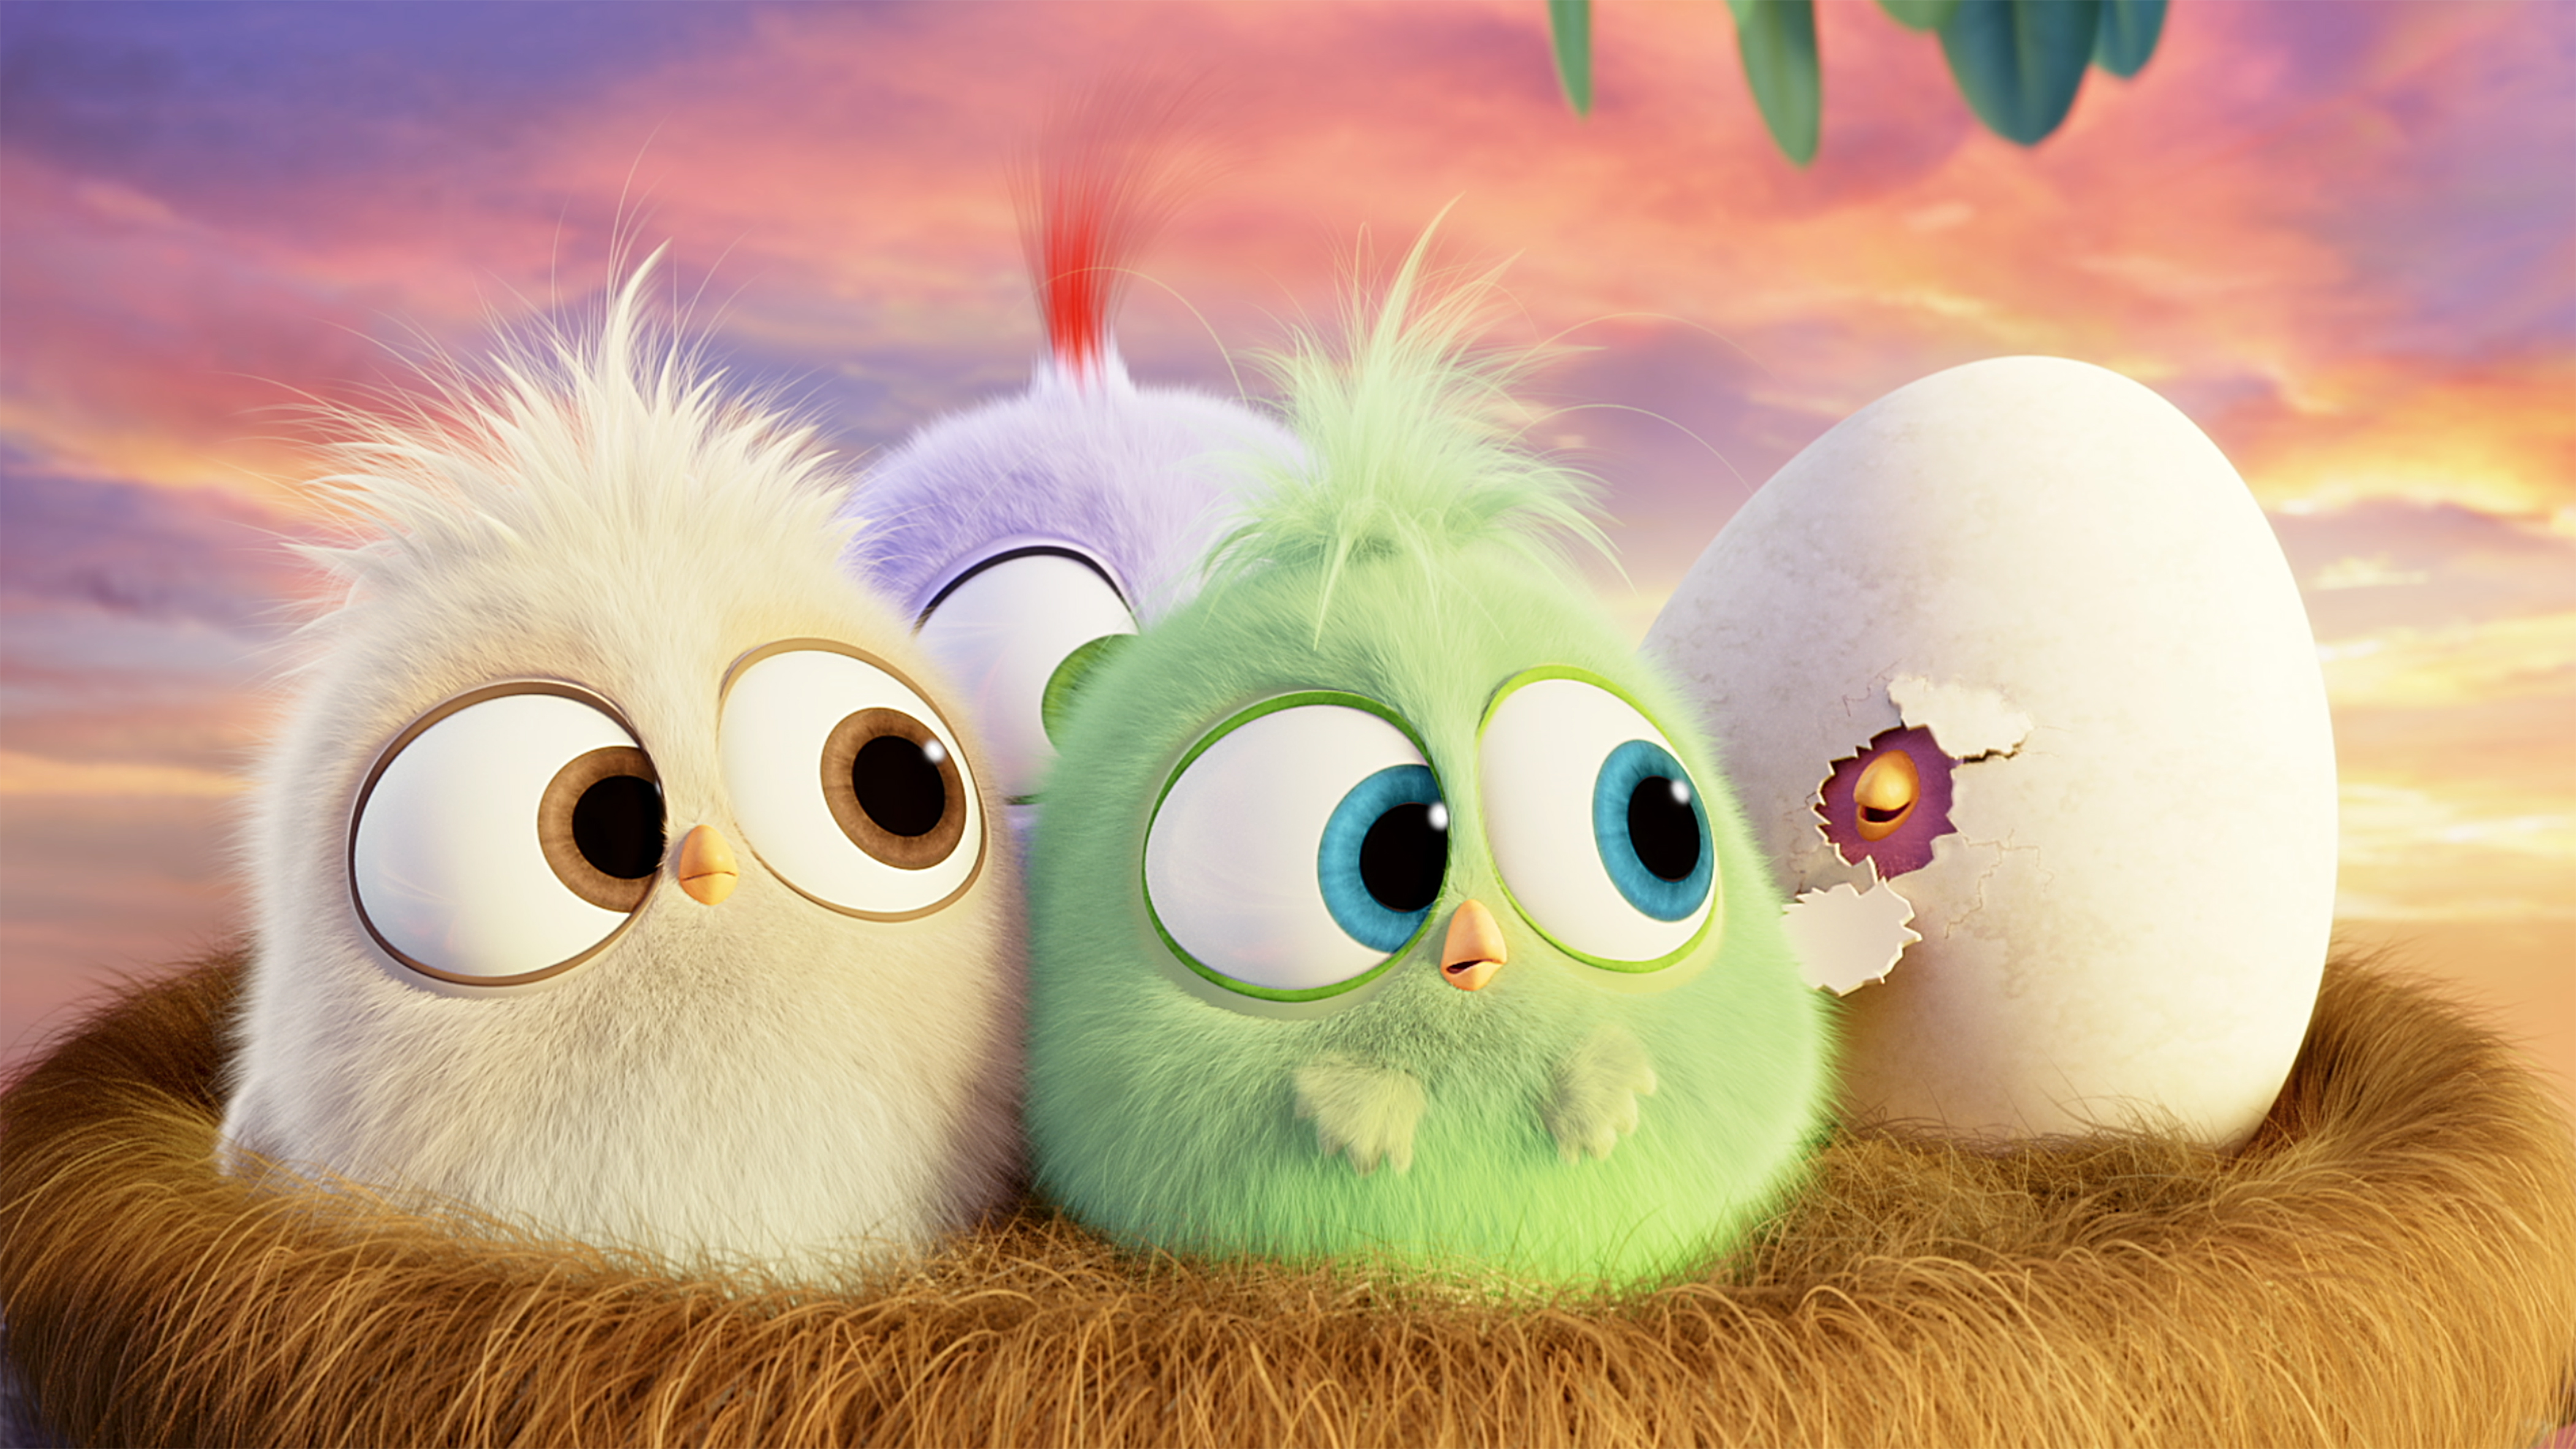 Download Cute Love Birds Wallpapers  Free Wallpaper For your